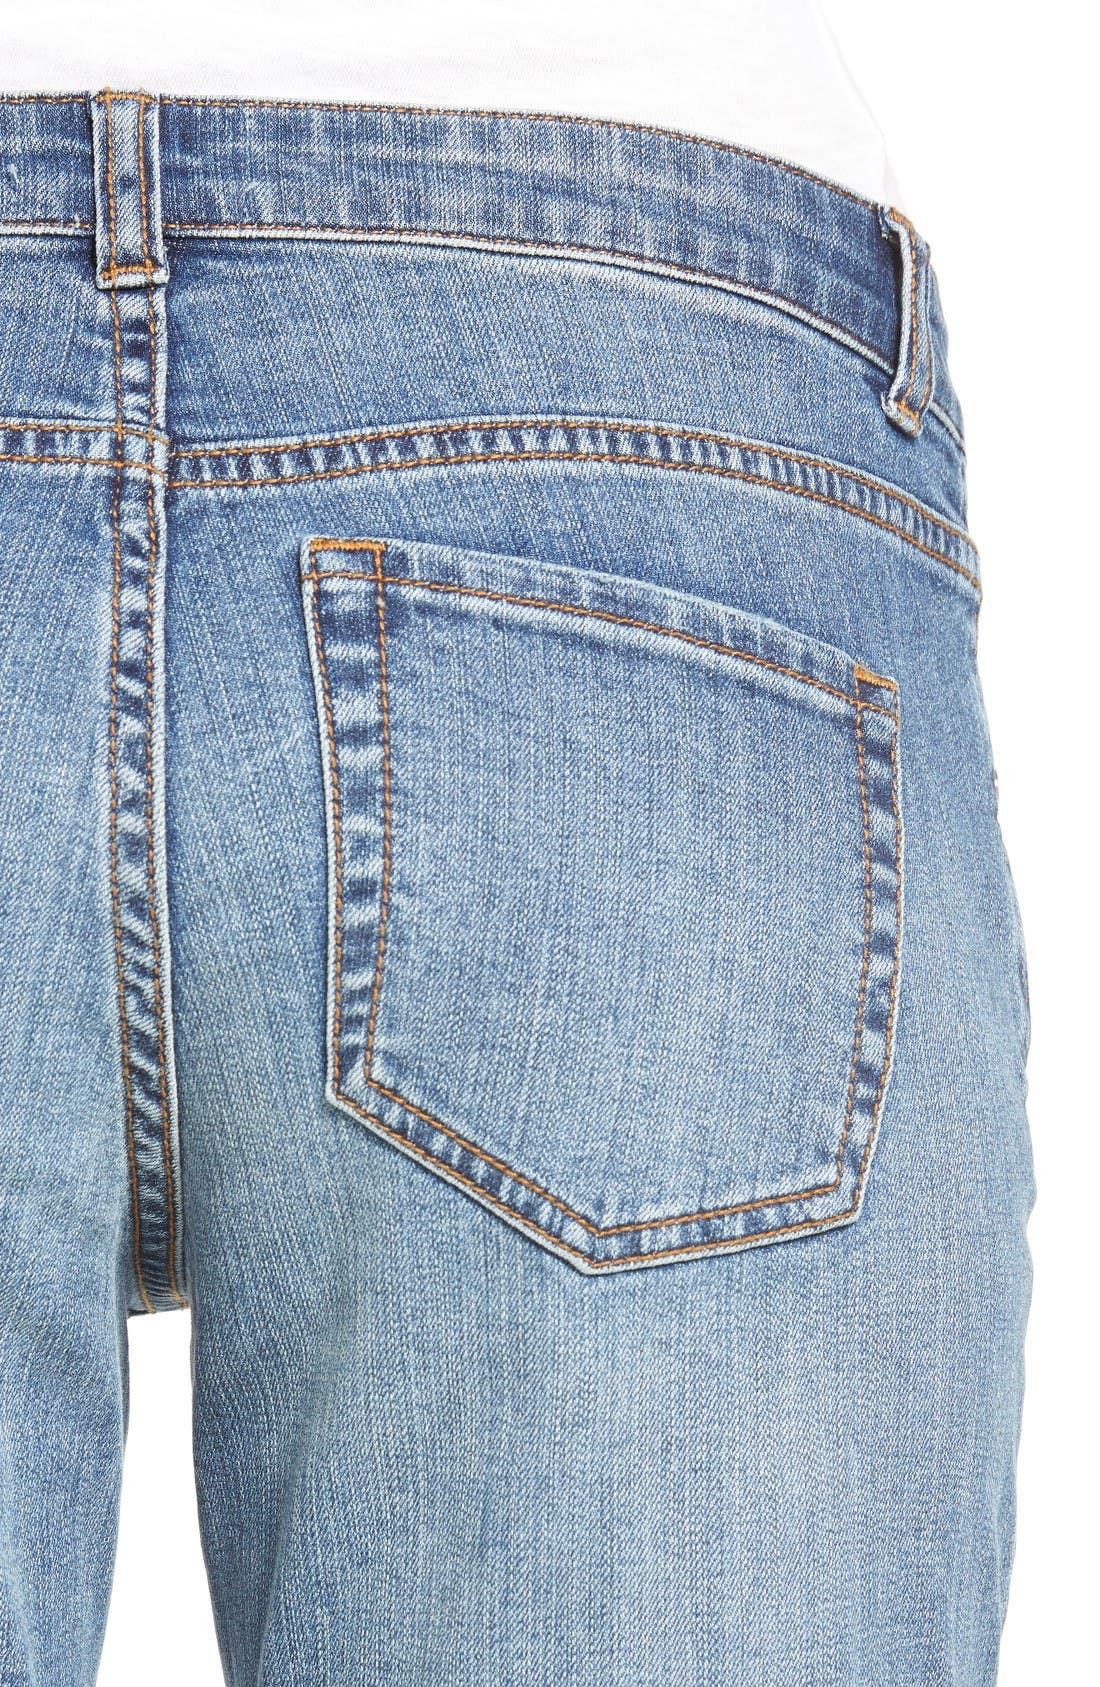 Alternate Image 5  - Caslon® Distressed Roll Cuff Crop Jeans (Regular & Petite) (Blue Sandwash)